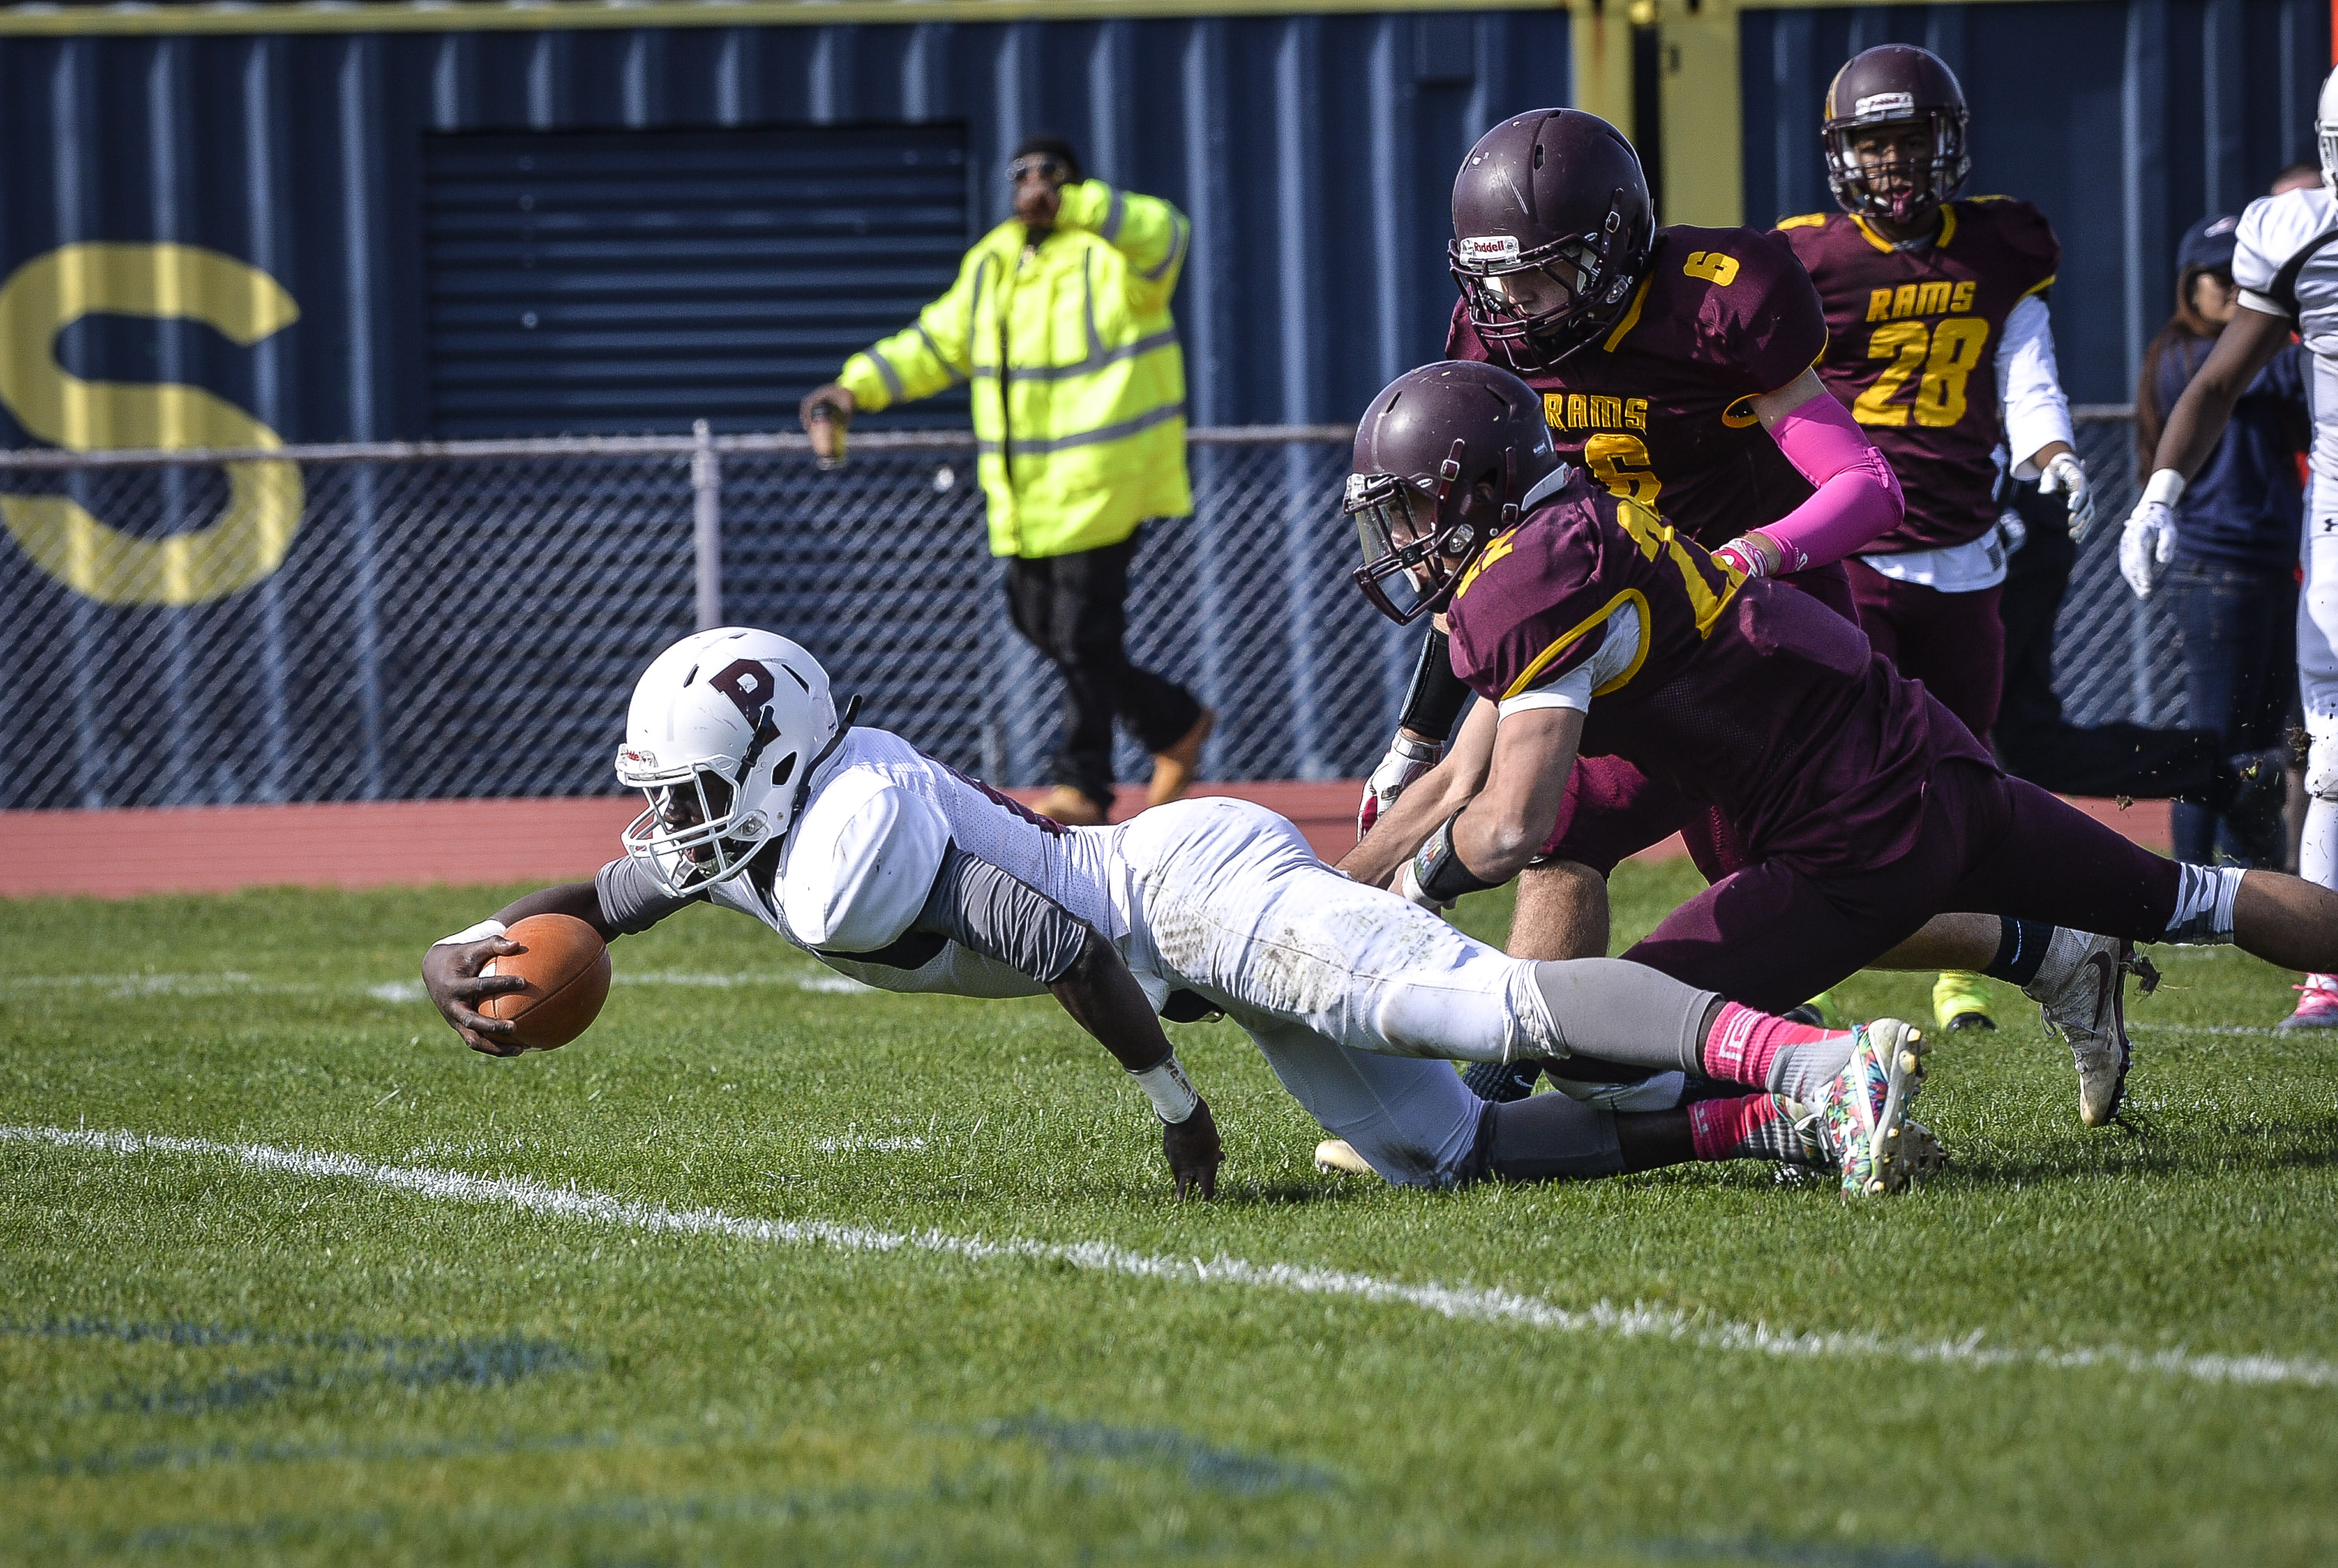 Toure is tackled one yard short of the end zone against Gloucester Catholic in 2016.